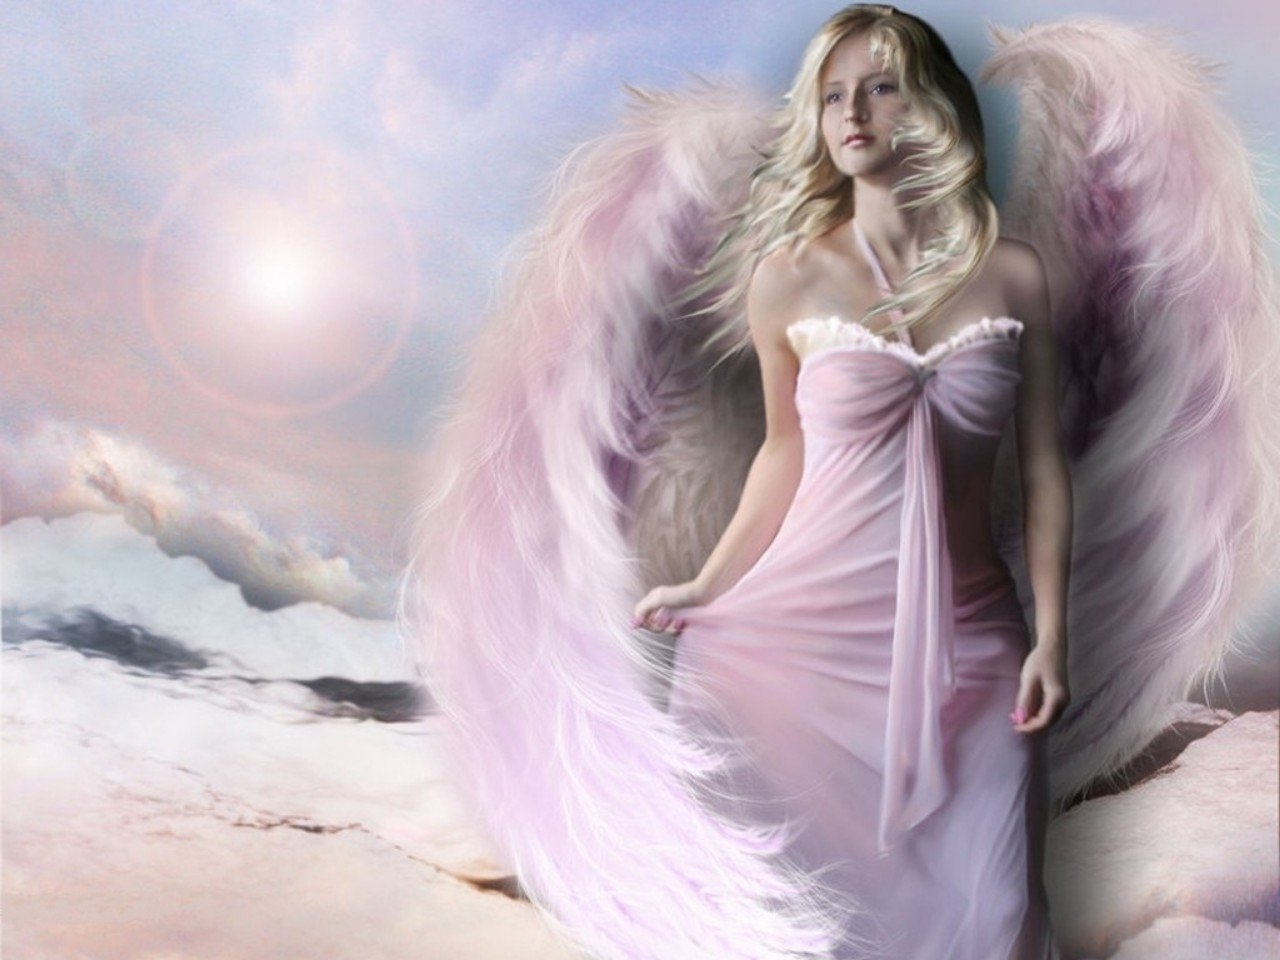 angel wallpaper download description angel wallpaper 1280x960